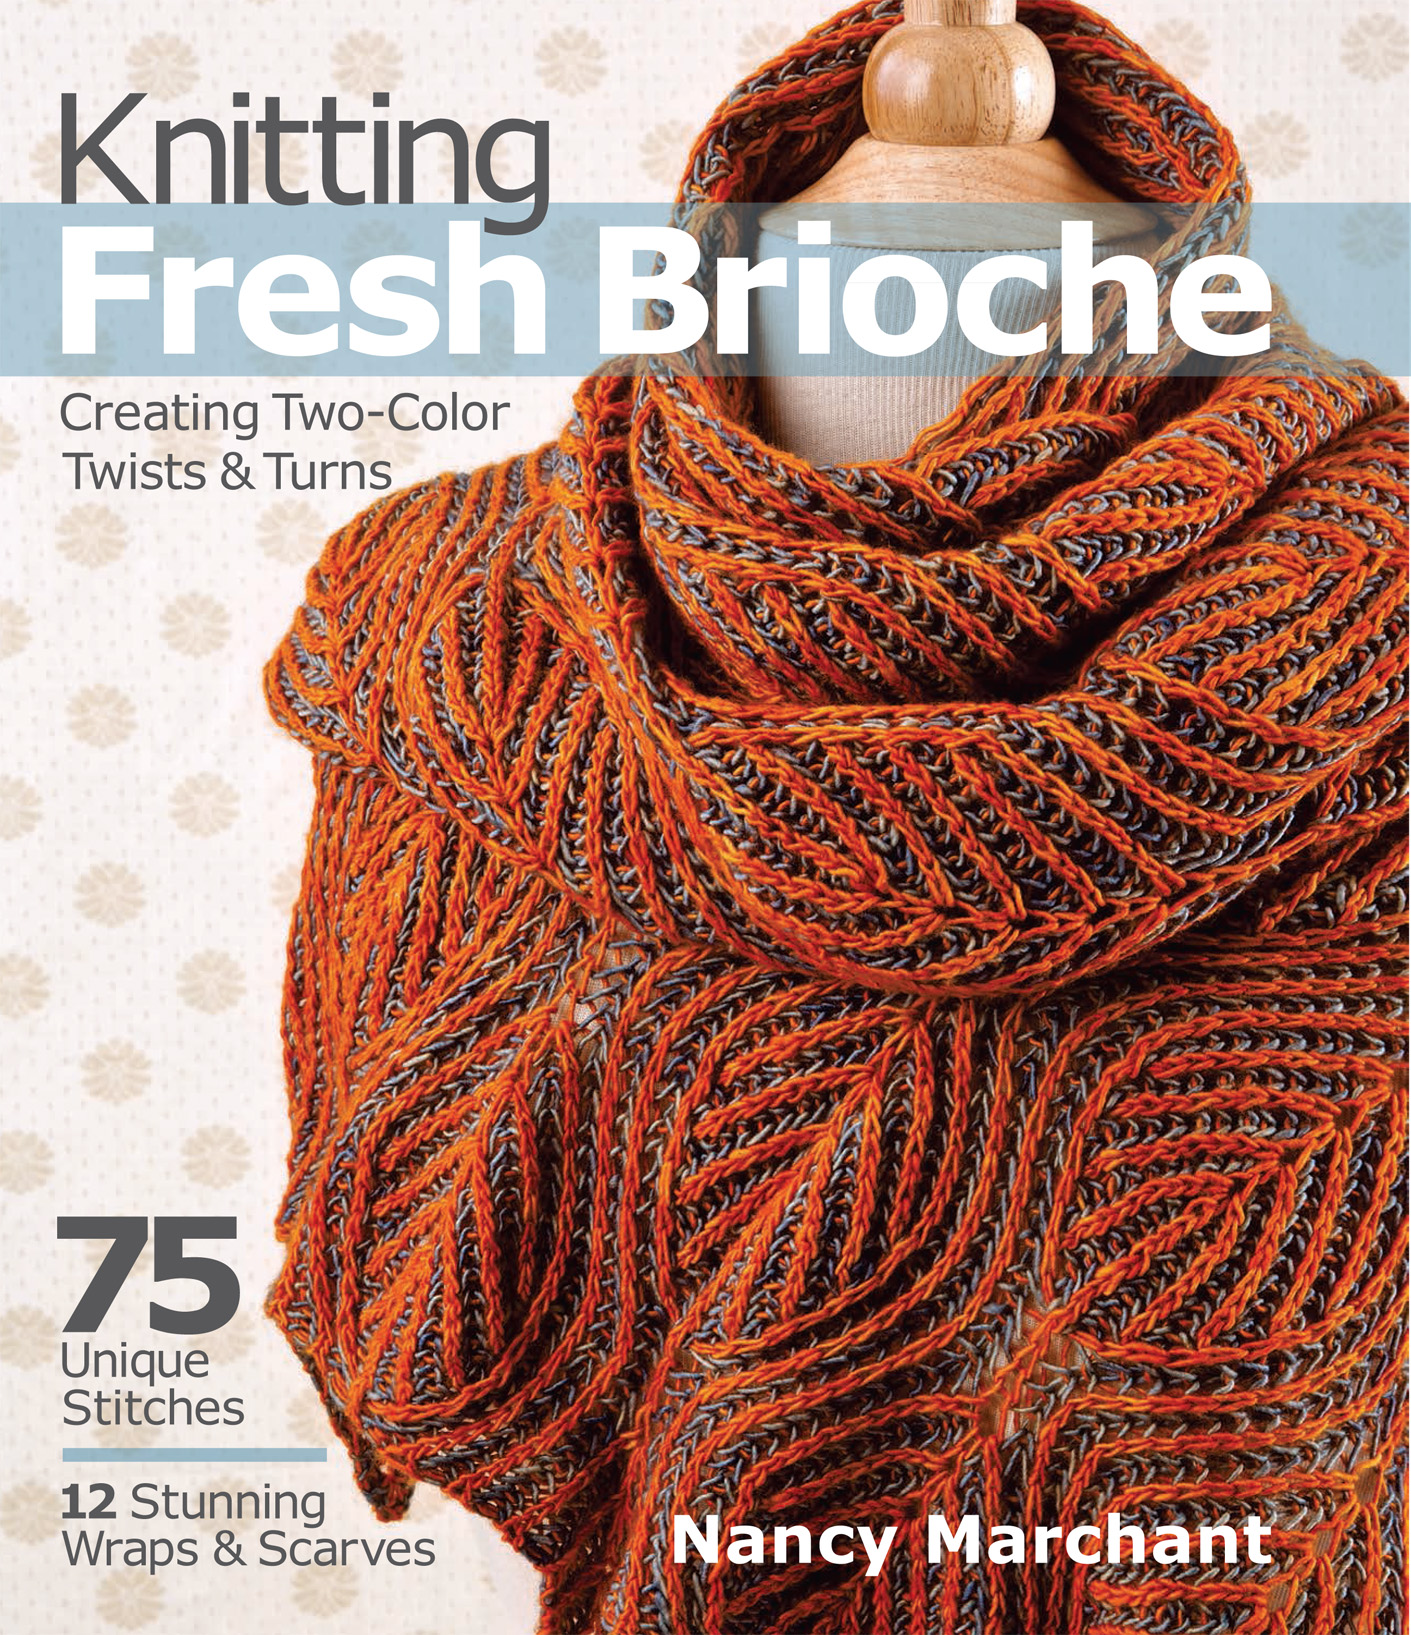 Z2842_KnittingBrioche_S